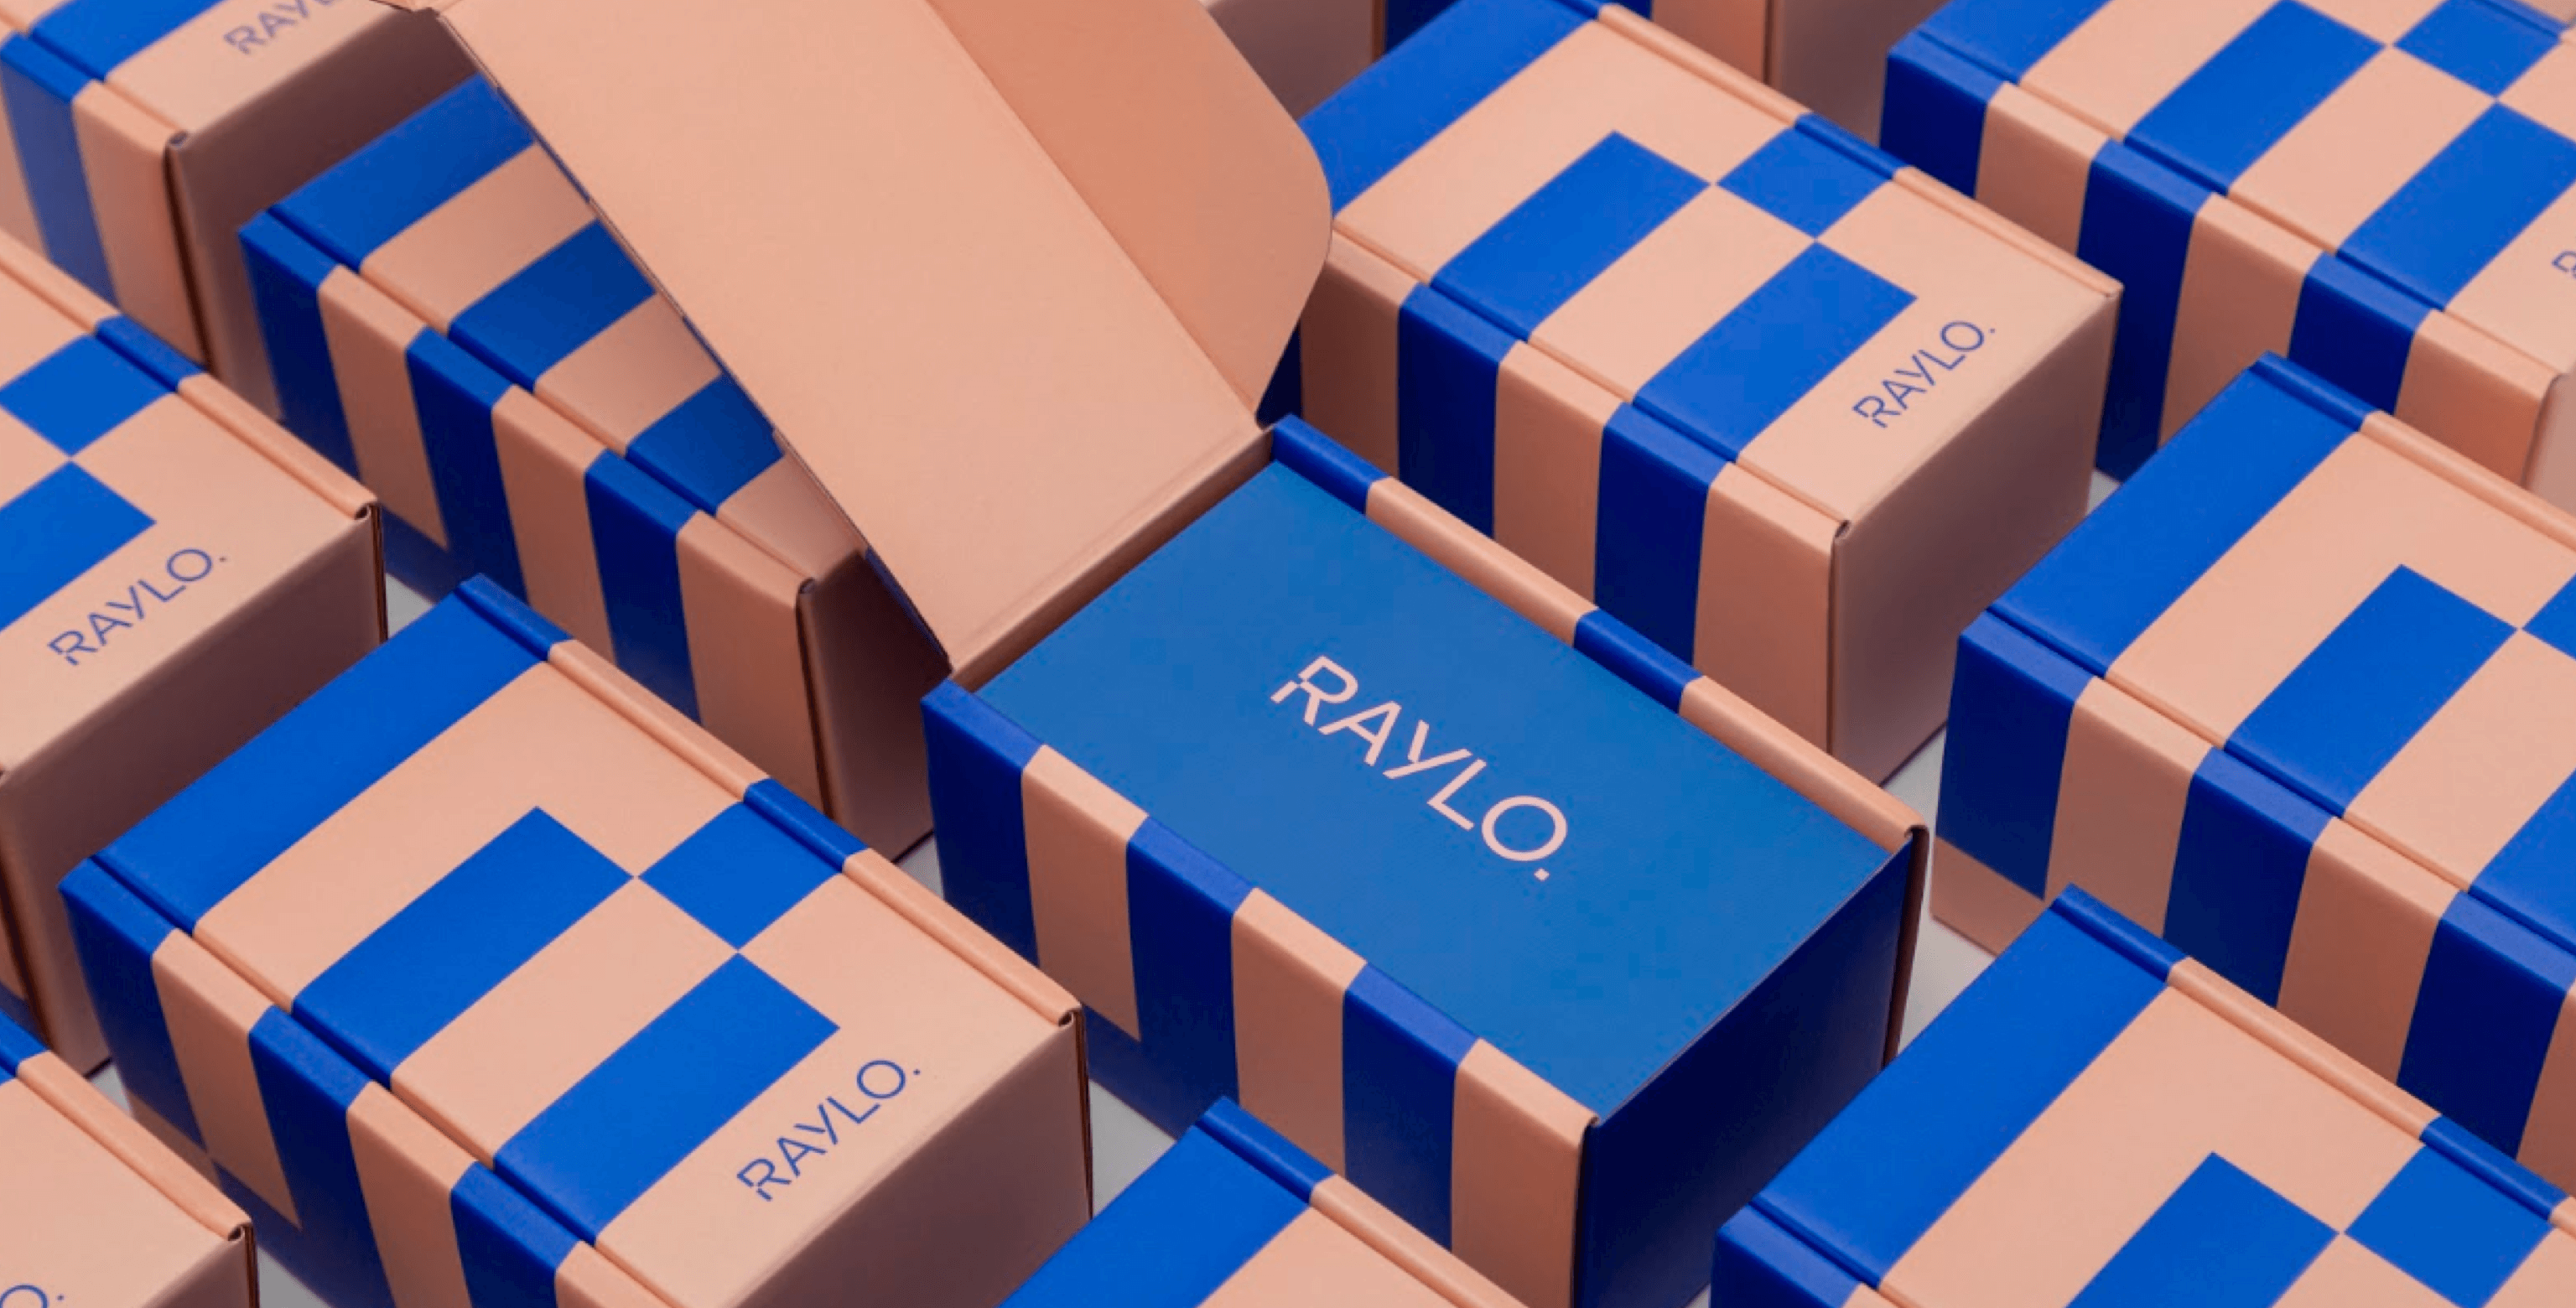 raylo - printed boxes for shipping - packhelp case study